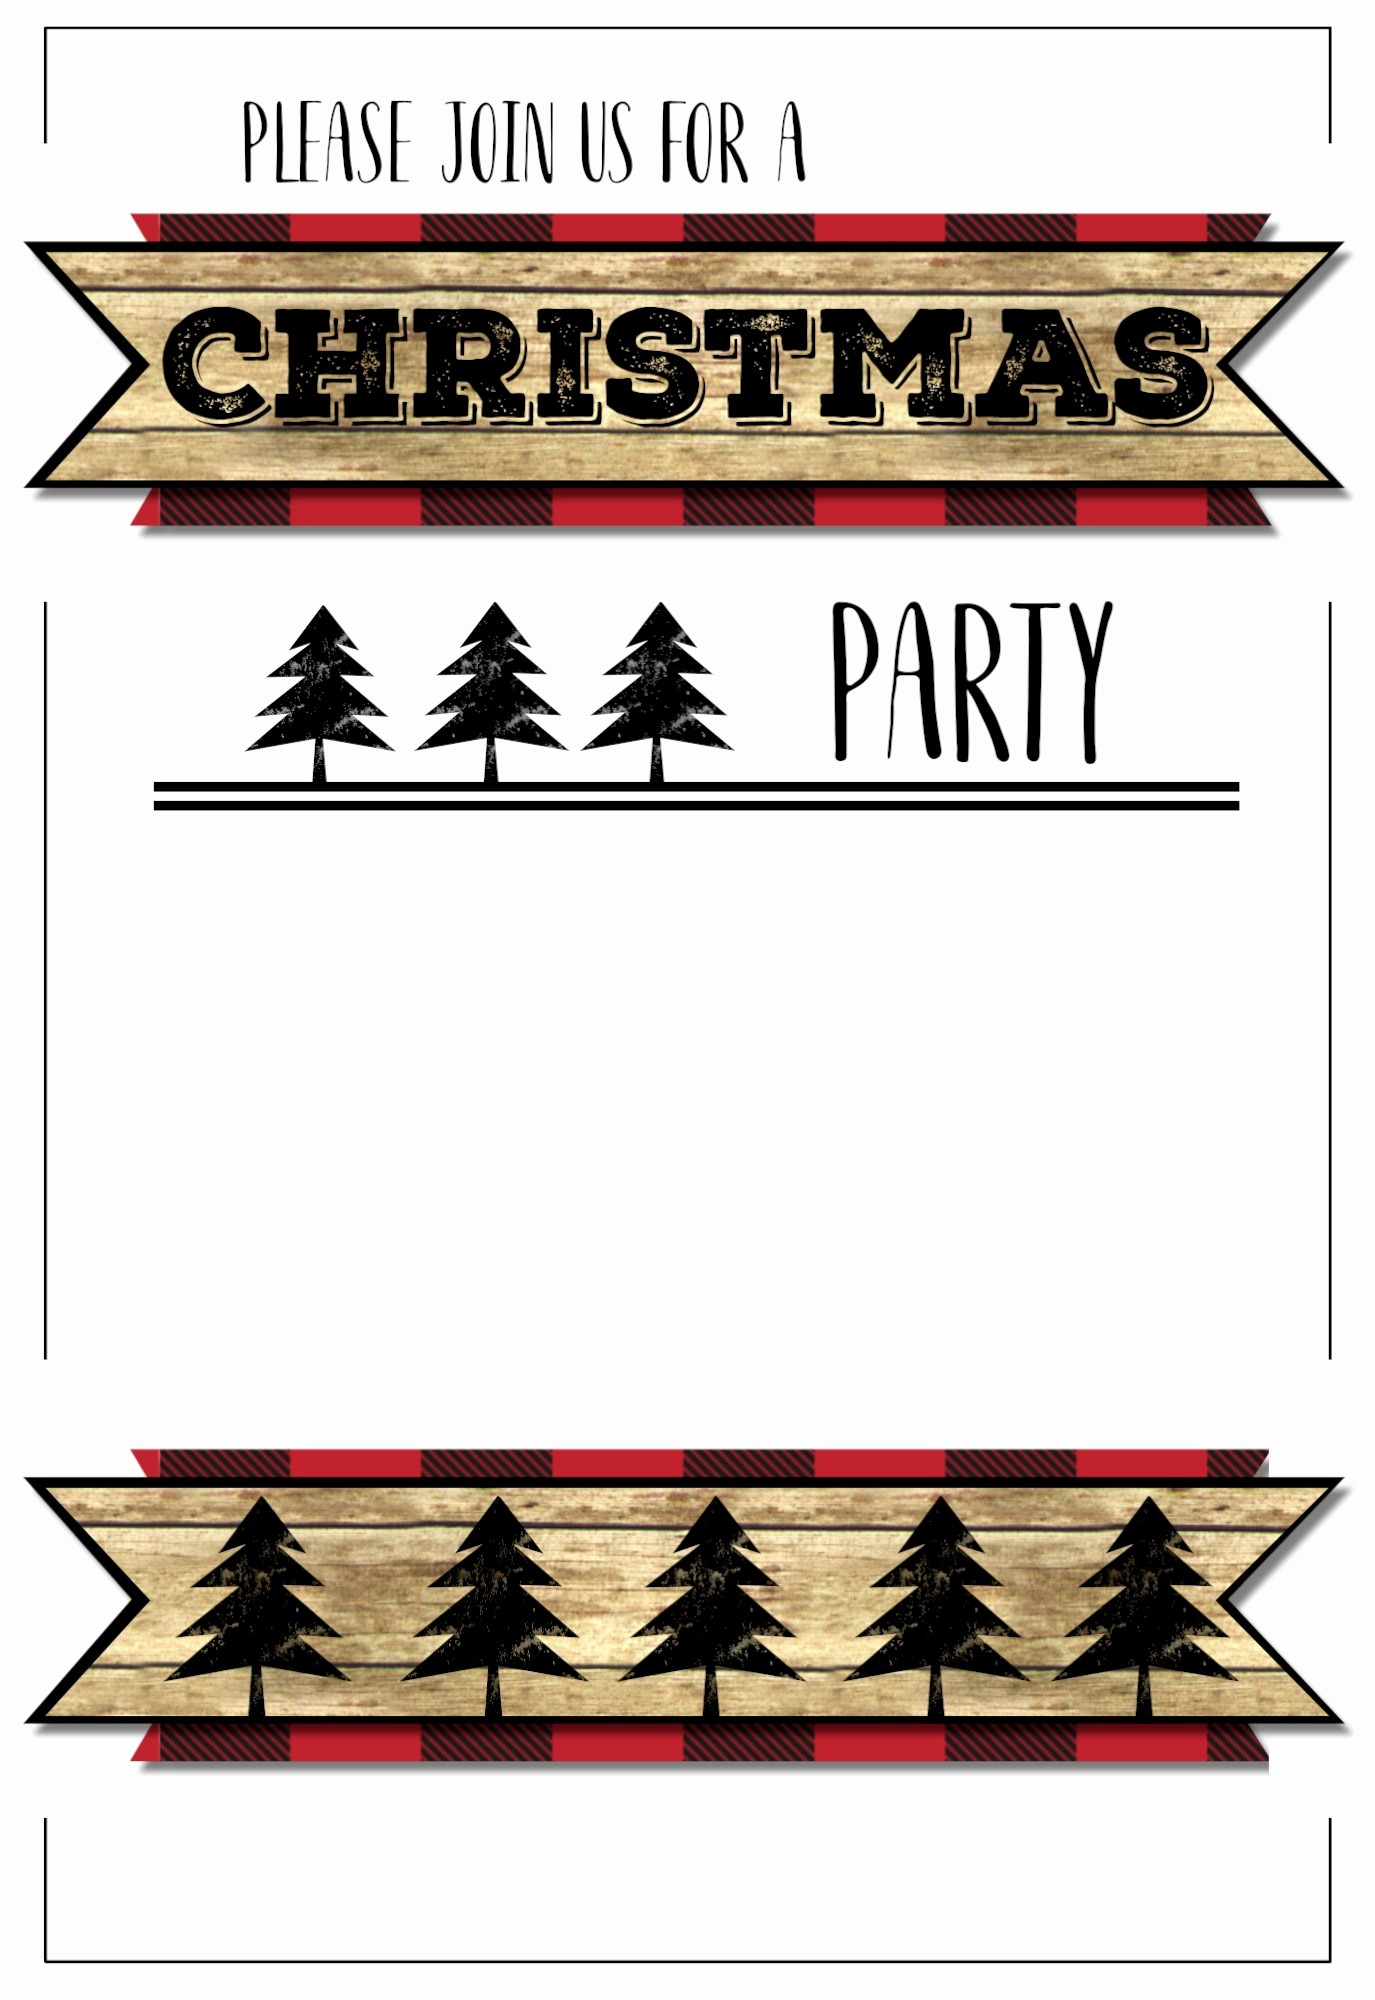 Christmas Party Invitation Free Template Inspirational Christmas Party Invitation Templates Free Printable